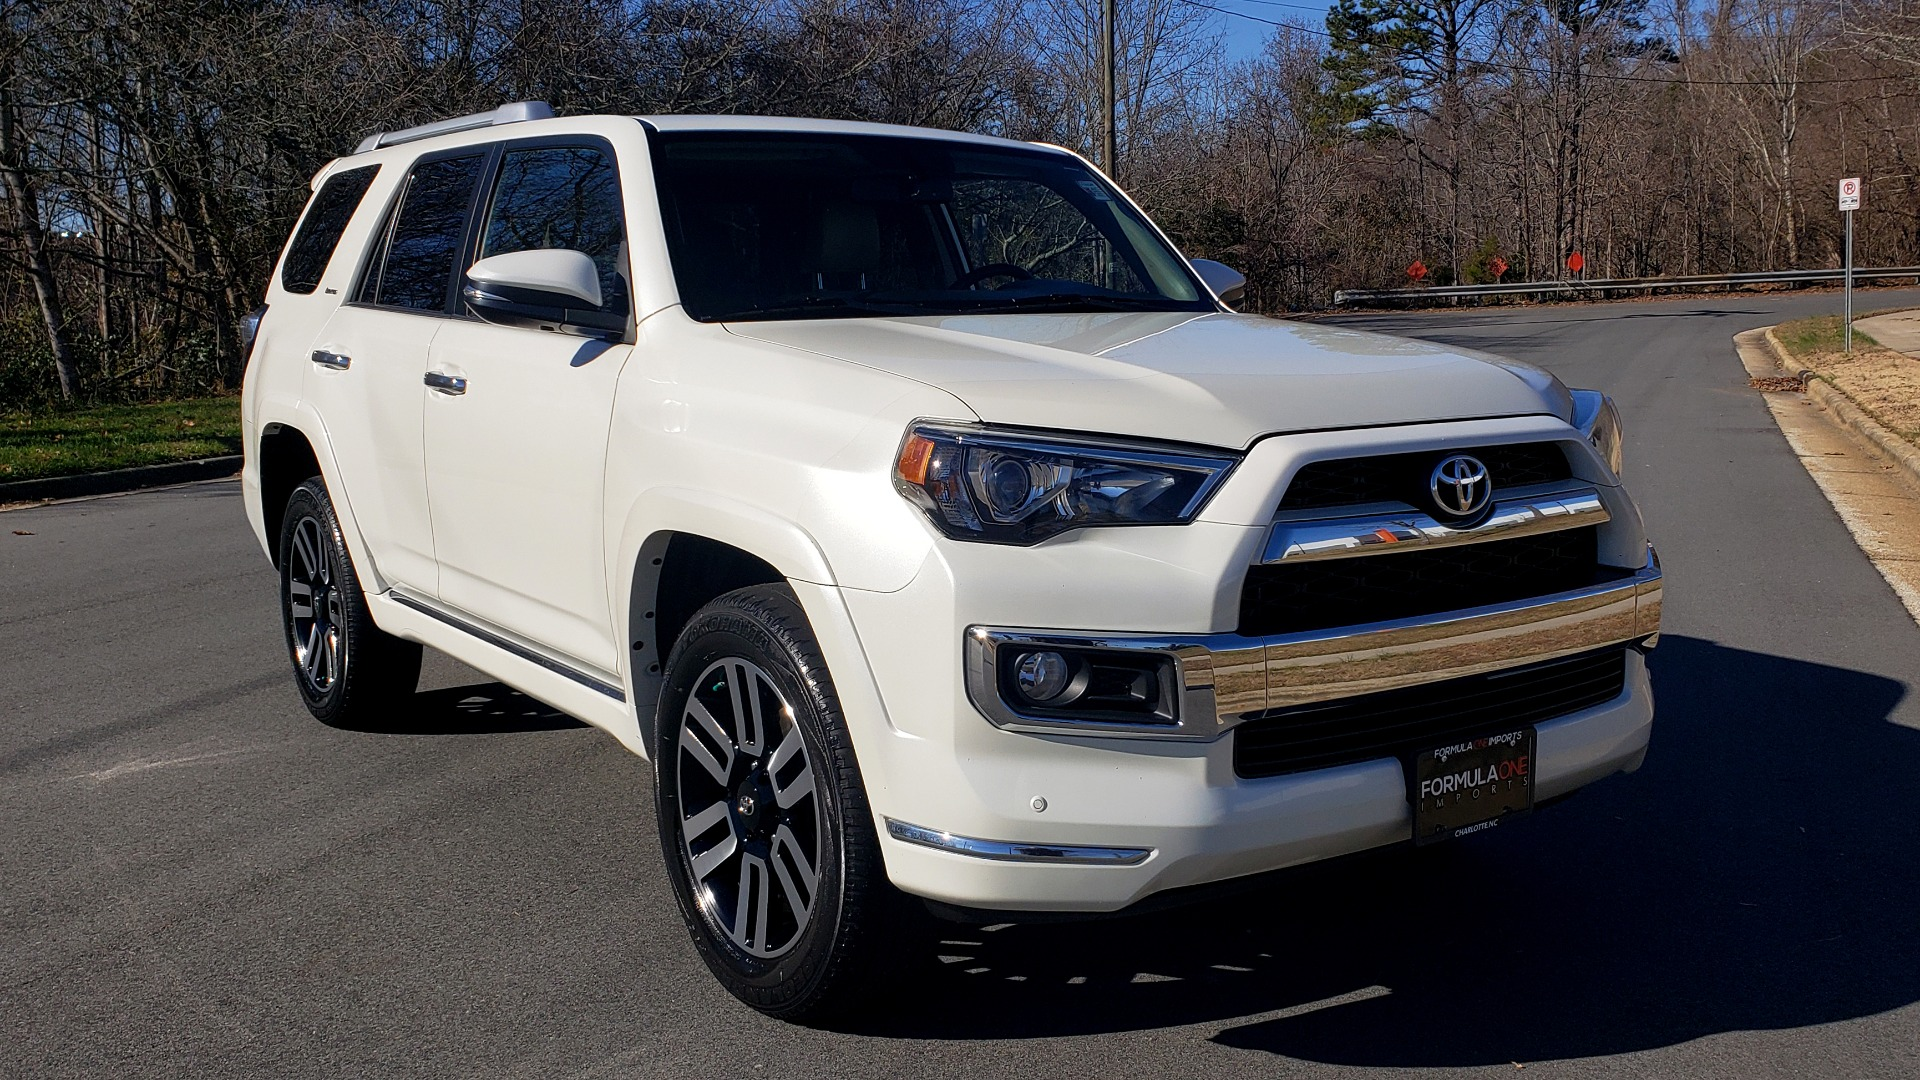 Used 2018 Toyota 4RUNNER LIMITED 4X4 / 4.0L V6 / AUTO / NAV / SUNROOF / JBL AUDIO / REARVIEW for sale Sold at Formula Imports in Charlotte NC 28227 4